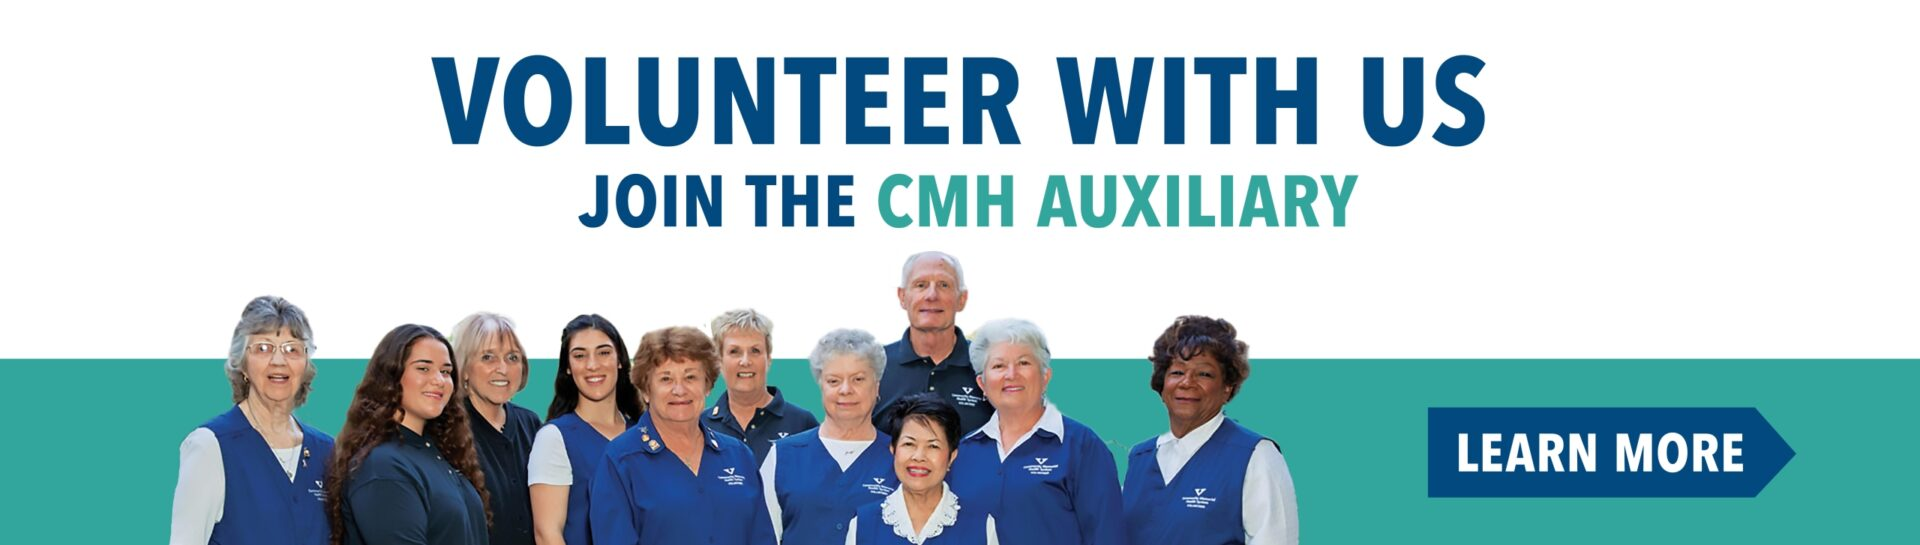 Volunteer With Us. Join the CMH Auxiliary